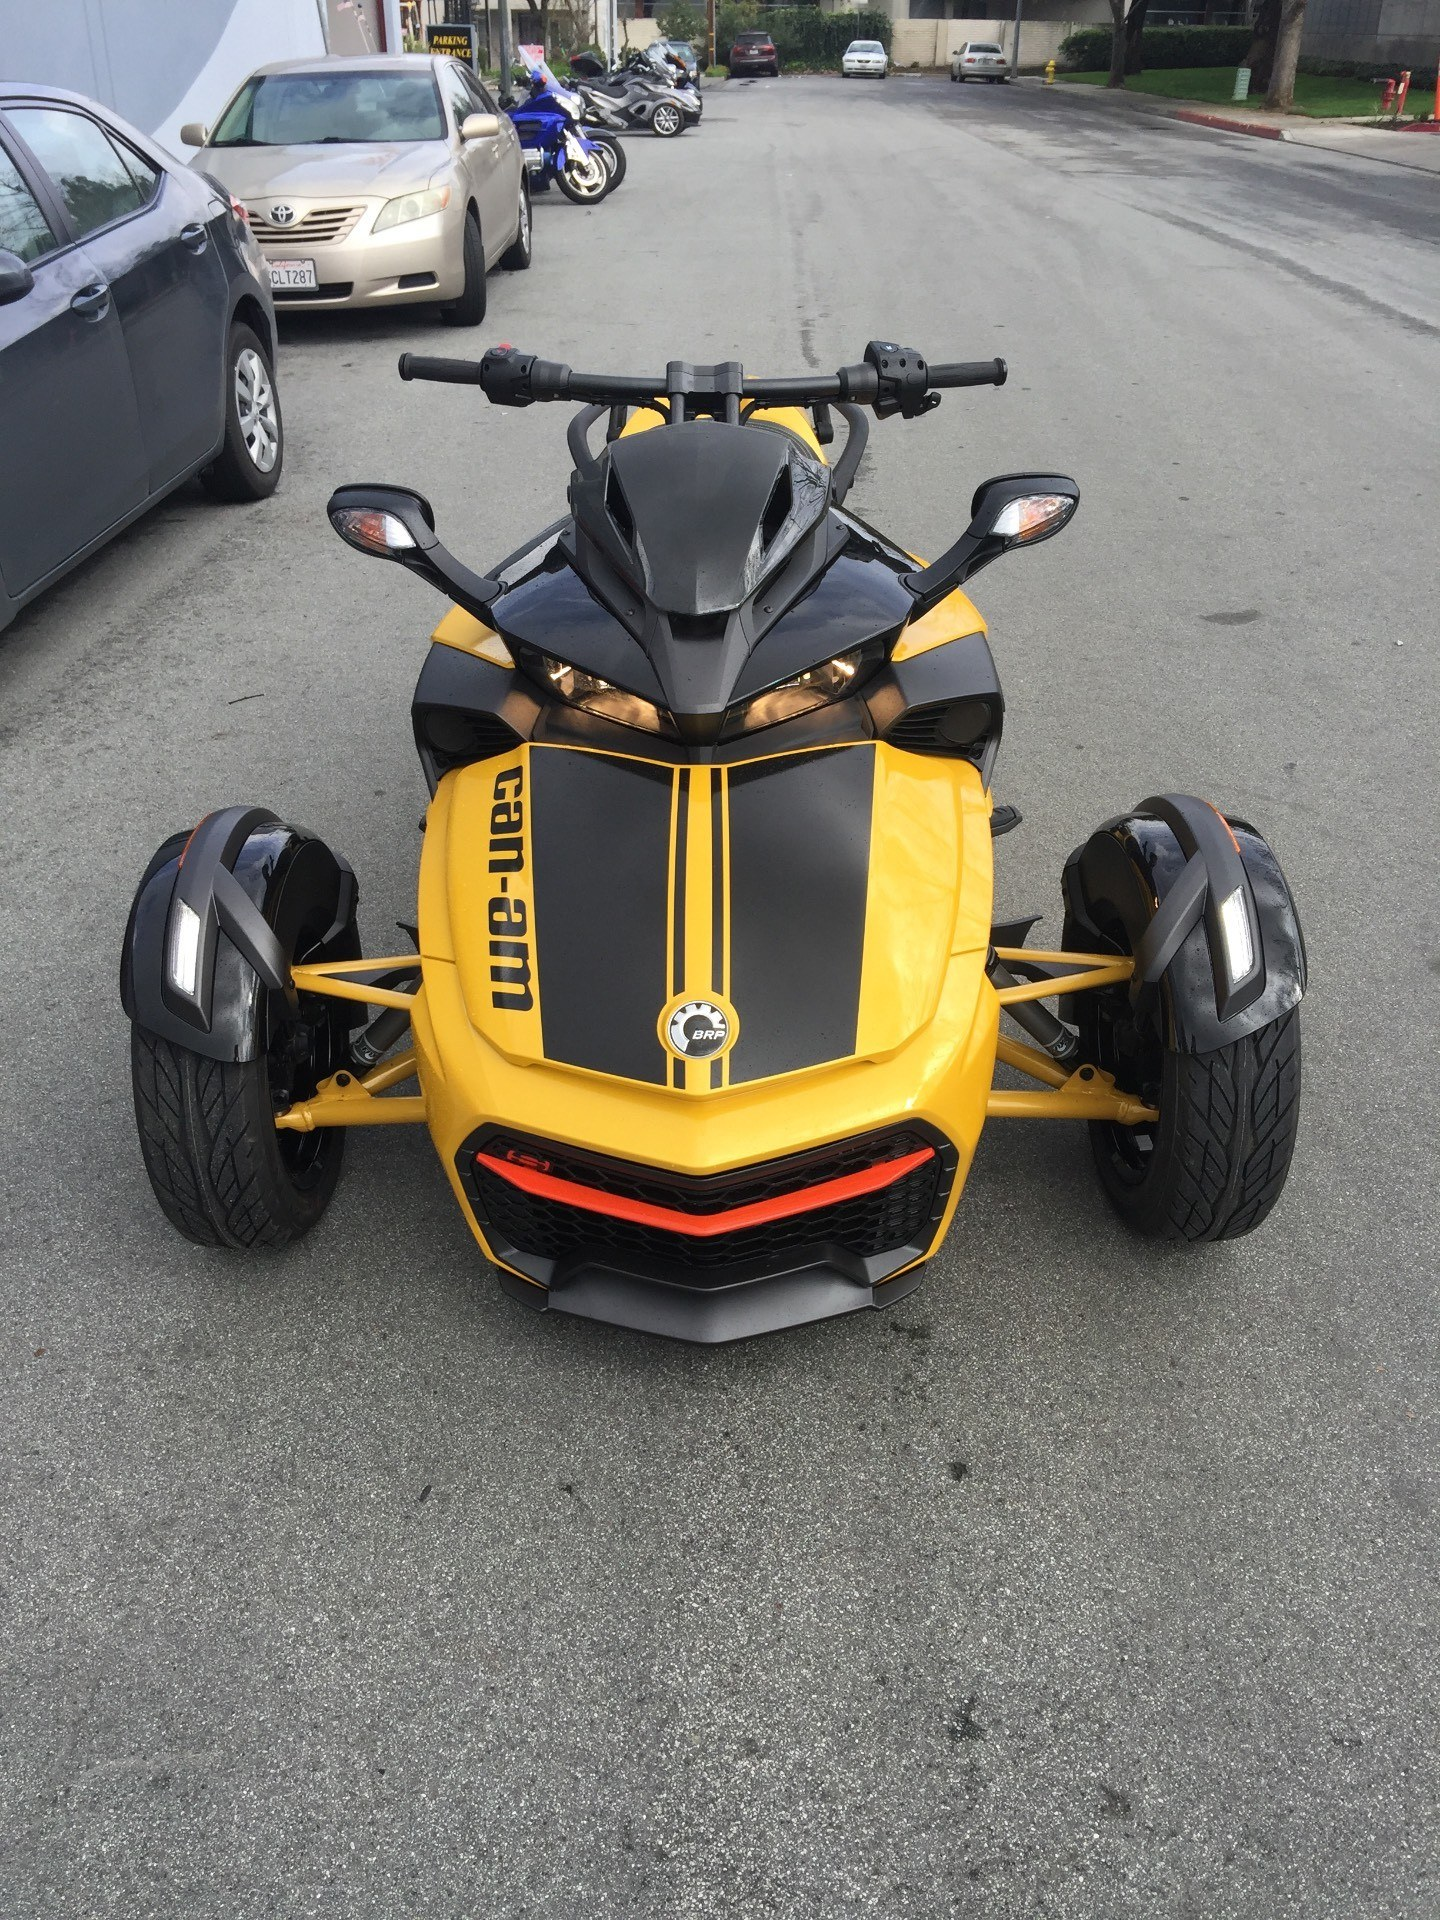 2017 Can-Am Spyder F3-S Daytona 500 SE6 in San Jose, California